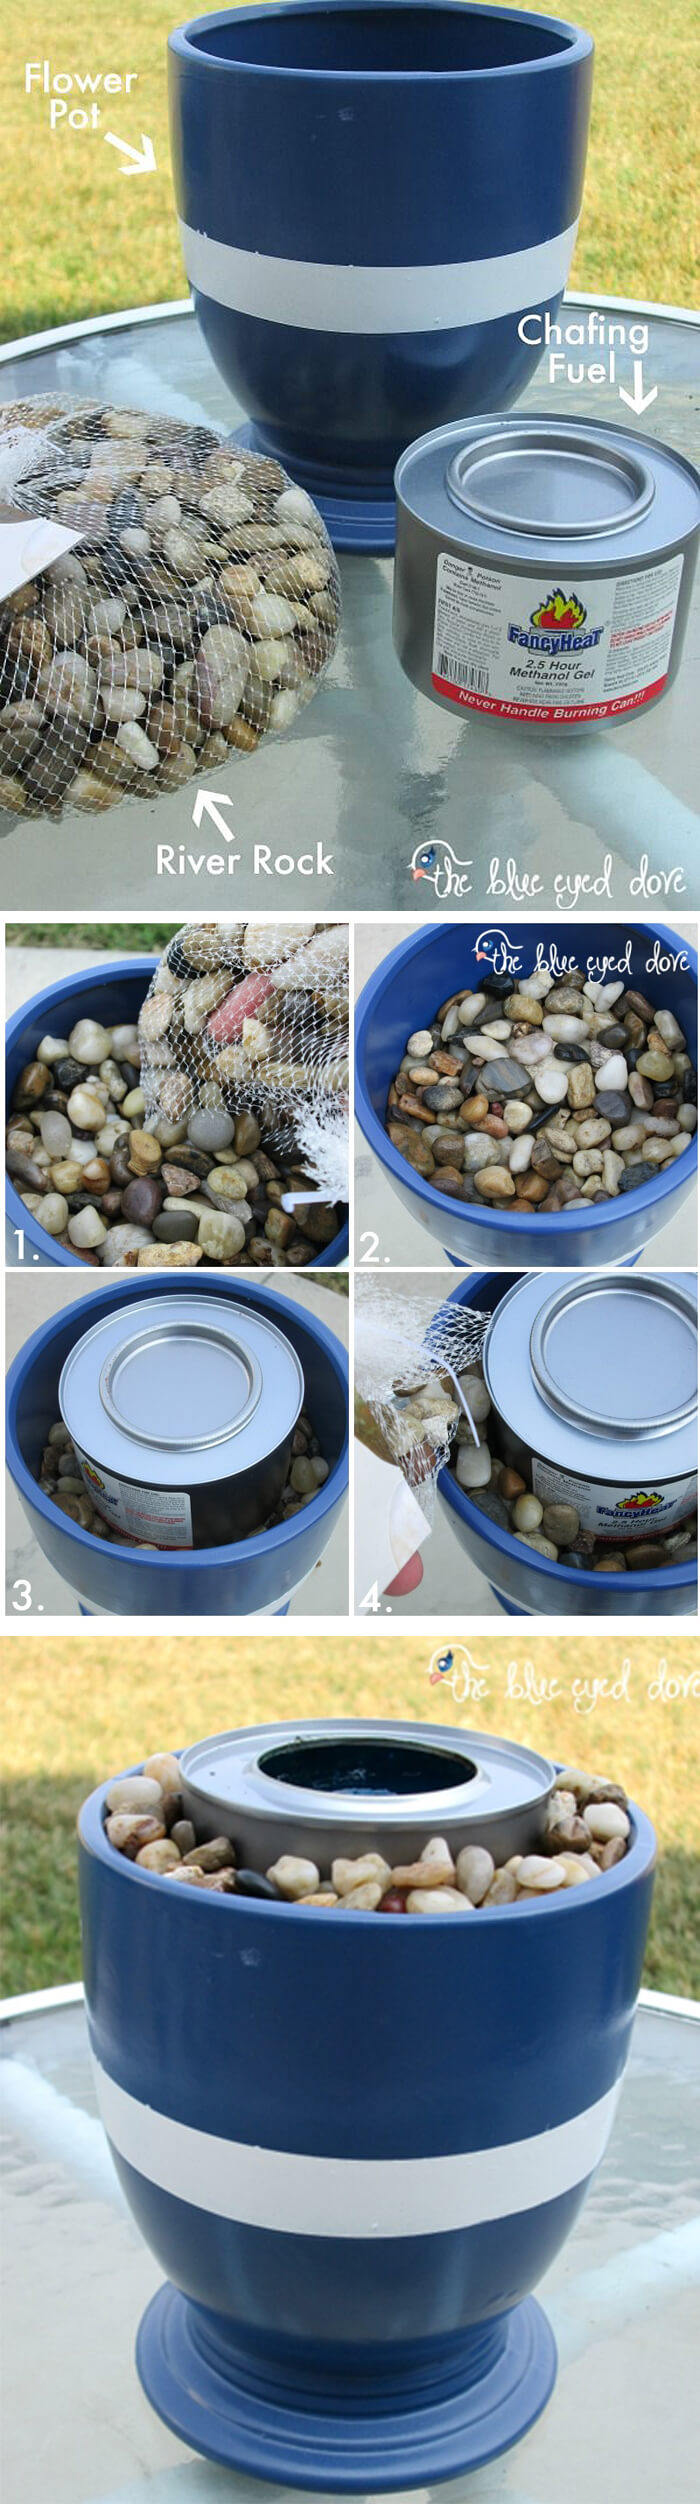 Blue Planter Fire Bowl with River Rocks